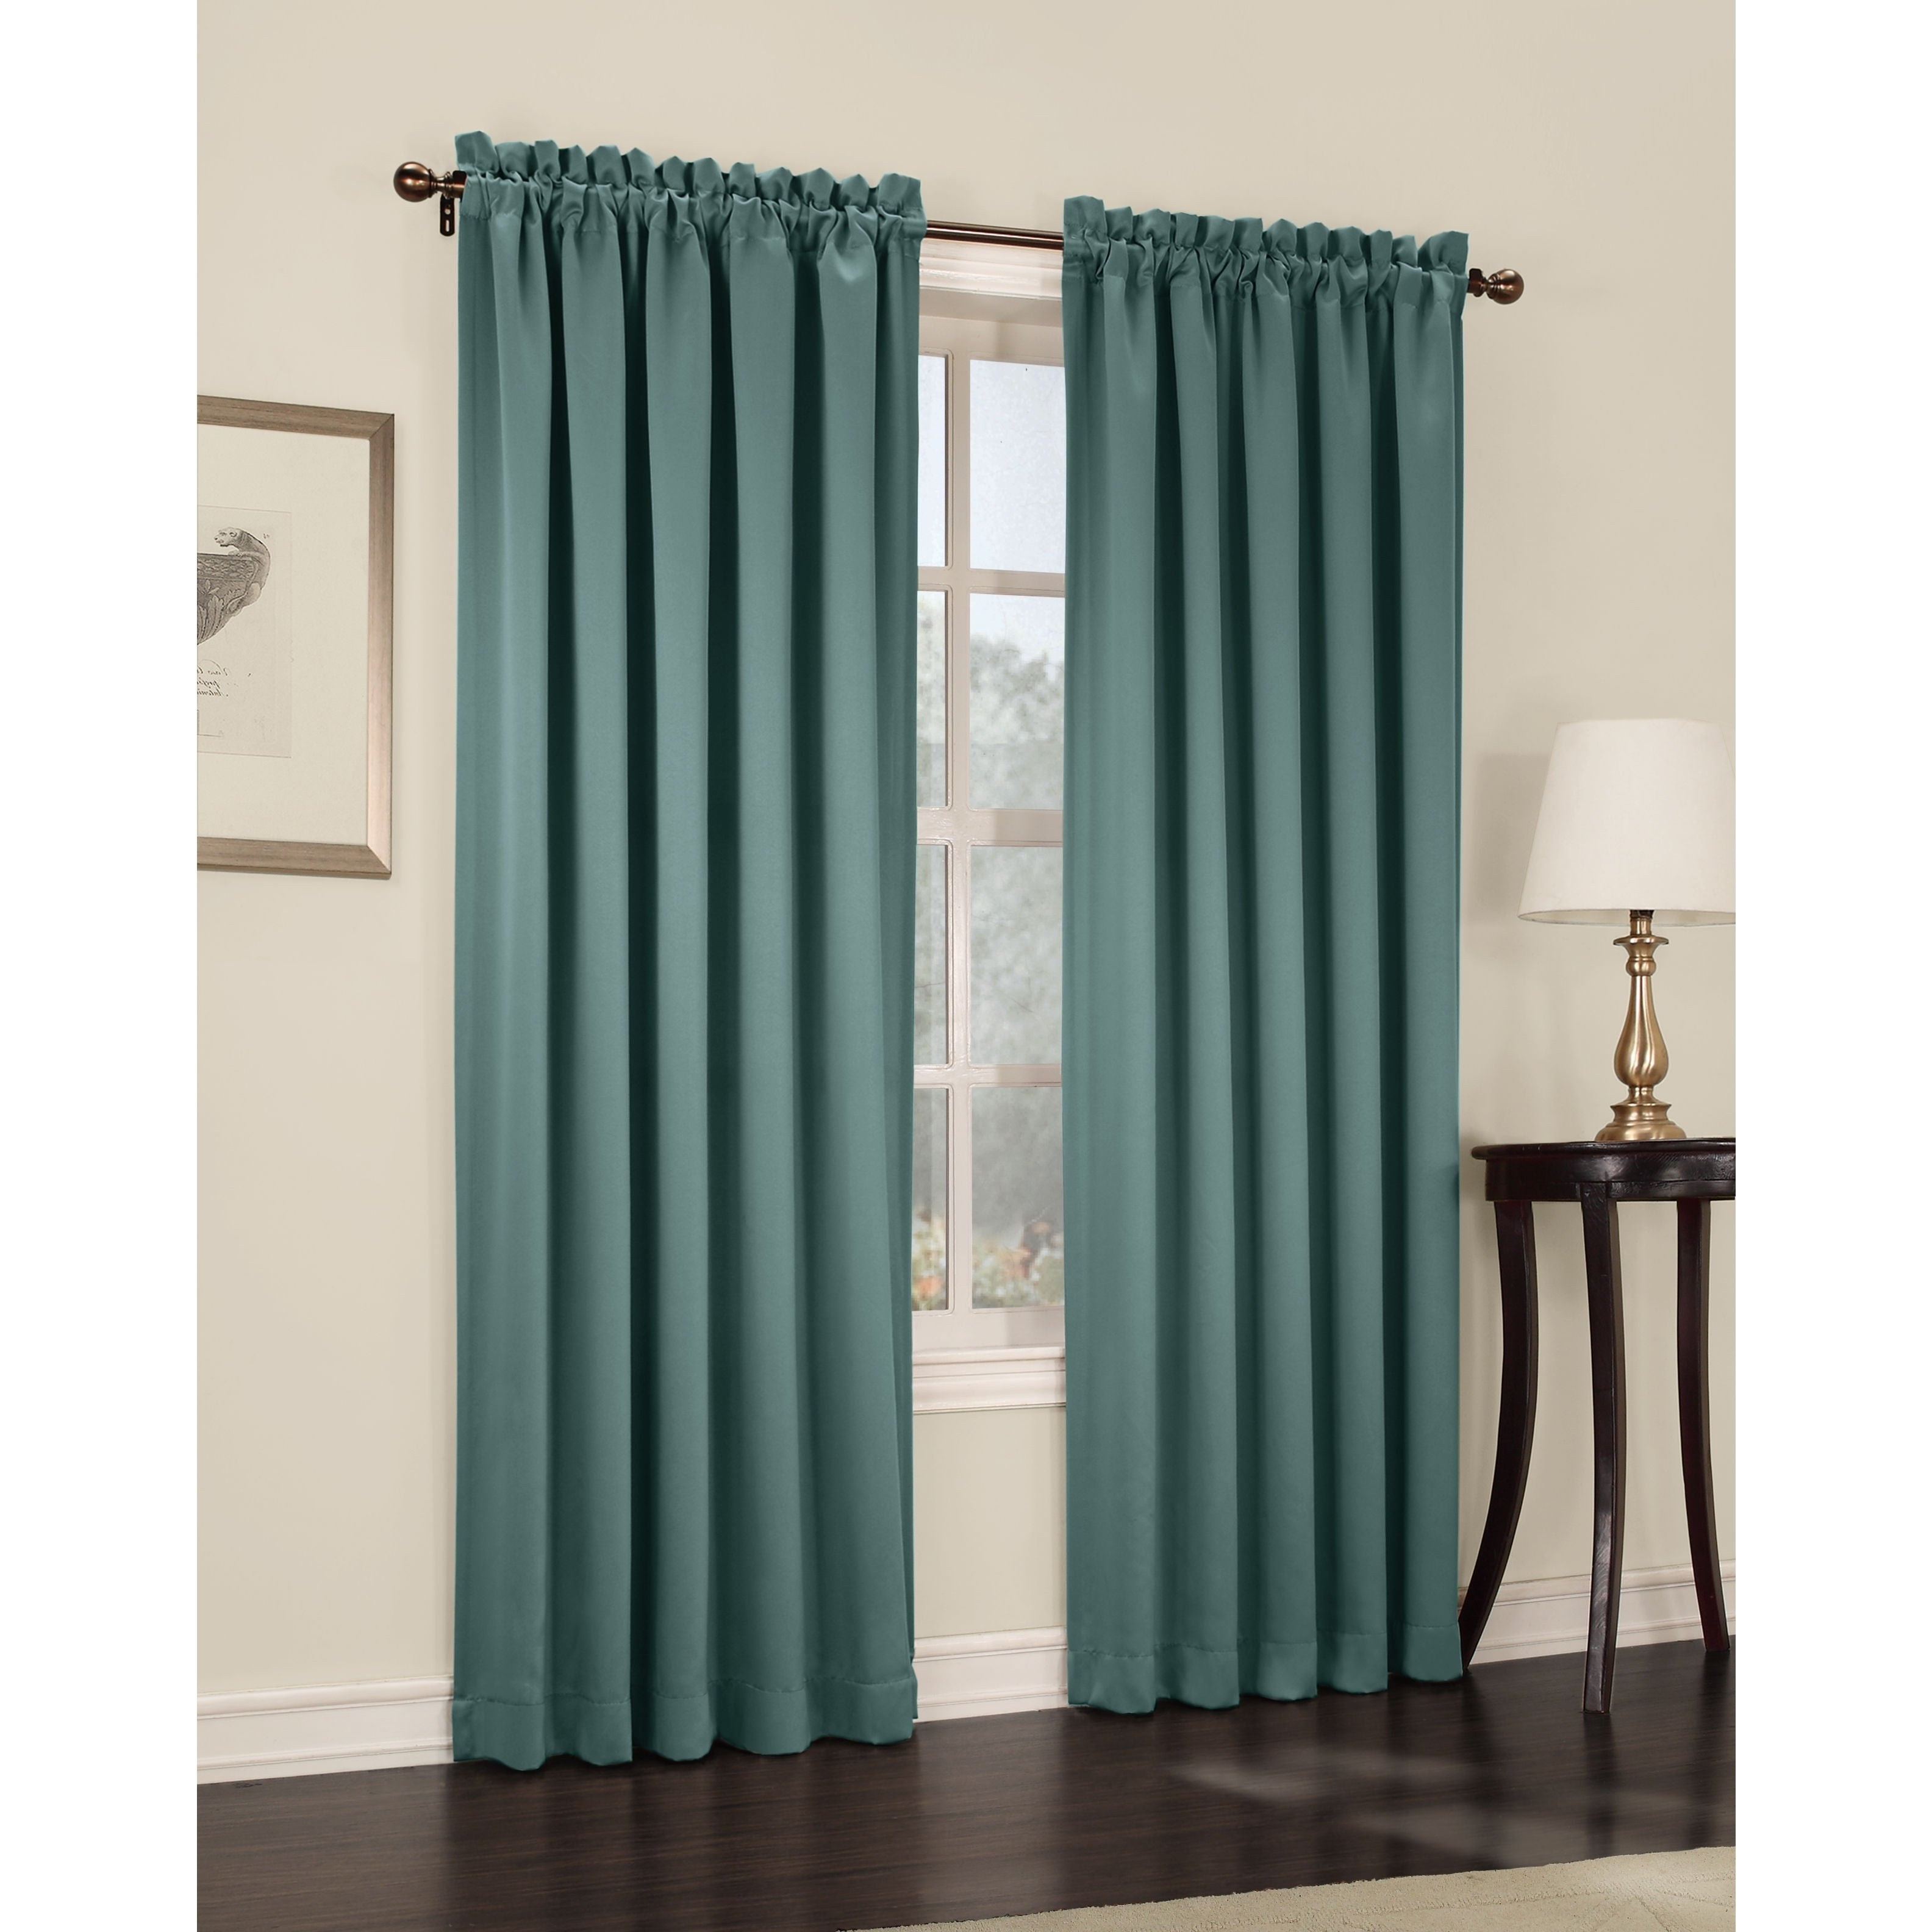 Porch & Den Inez Rod Pocket Room Darkening Window Curtain Panel With Nantahala Rod Pocket Room Darkening Patio Door Single Curtain Panels (View 19 of 20)